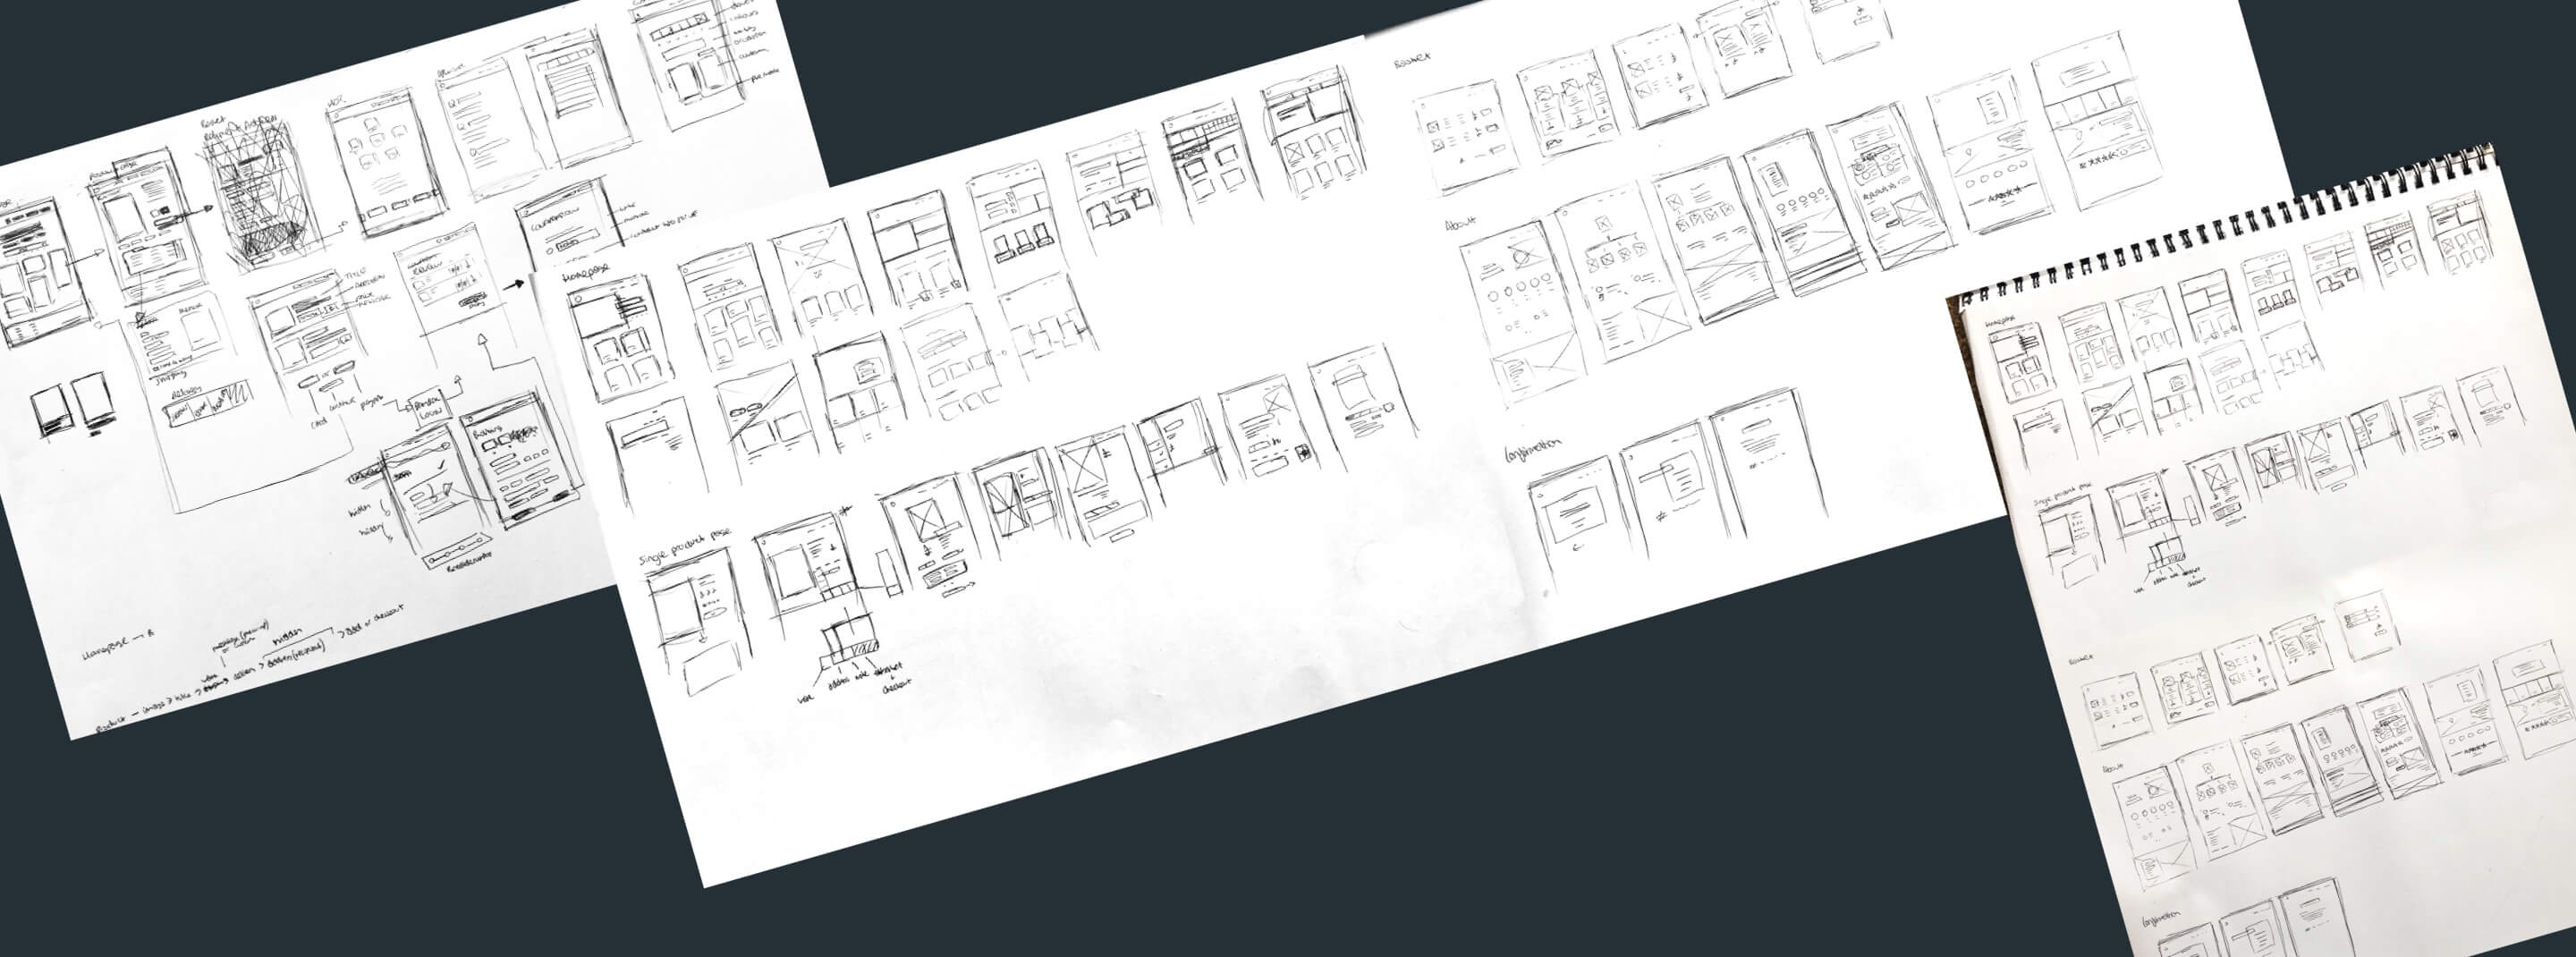 Wireframe sketches on notepads